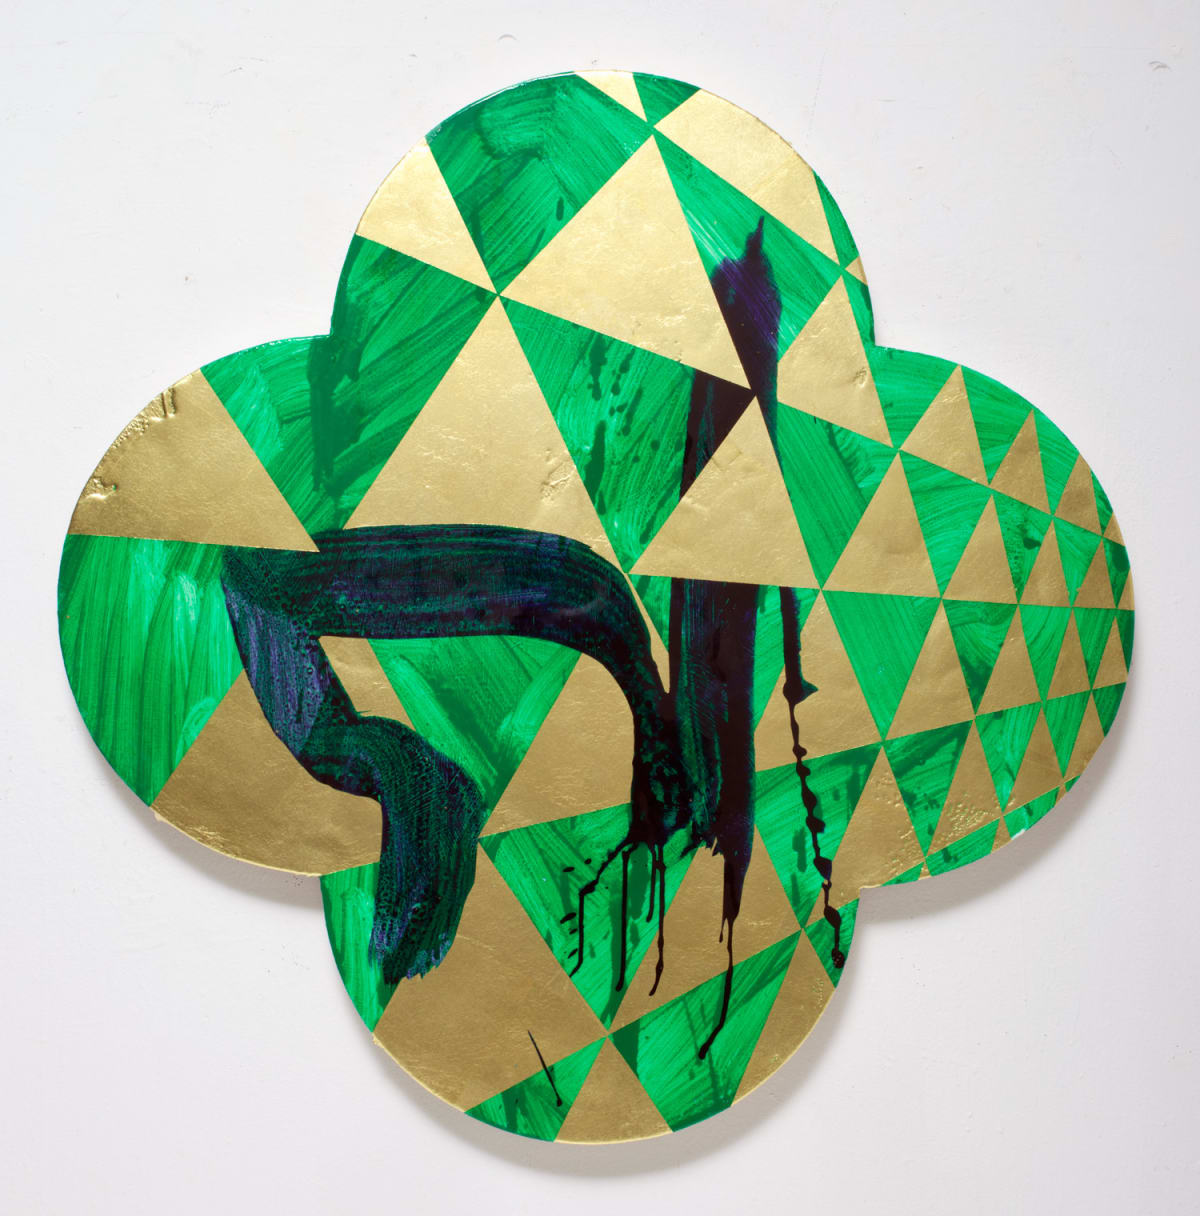 Max GIMBLETT Four White Leopards, 2011 Mixed media 40 x 40 in 101.6 x 101.6 cm